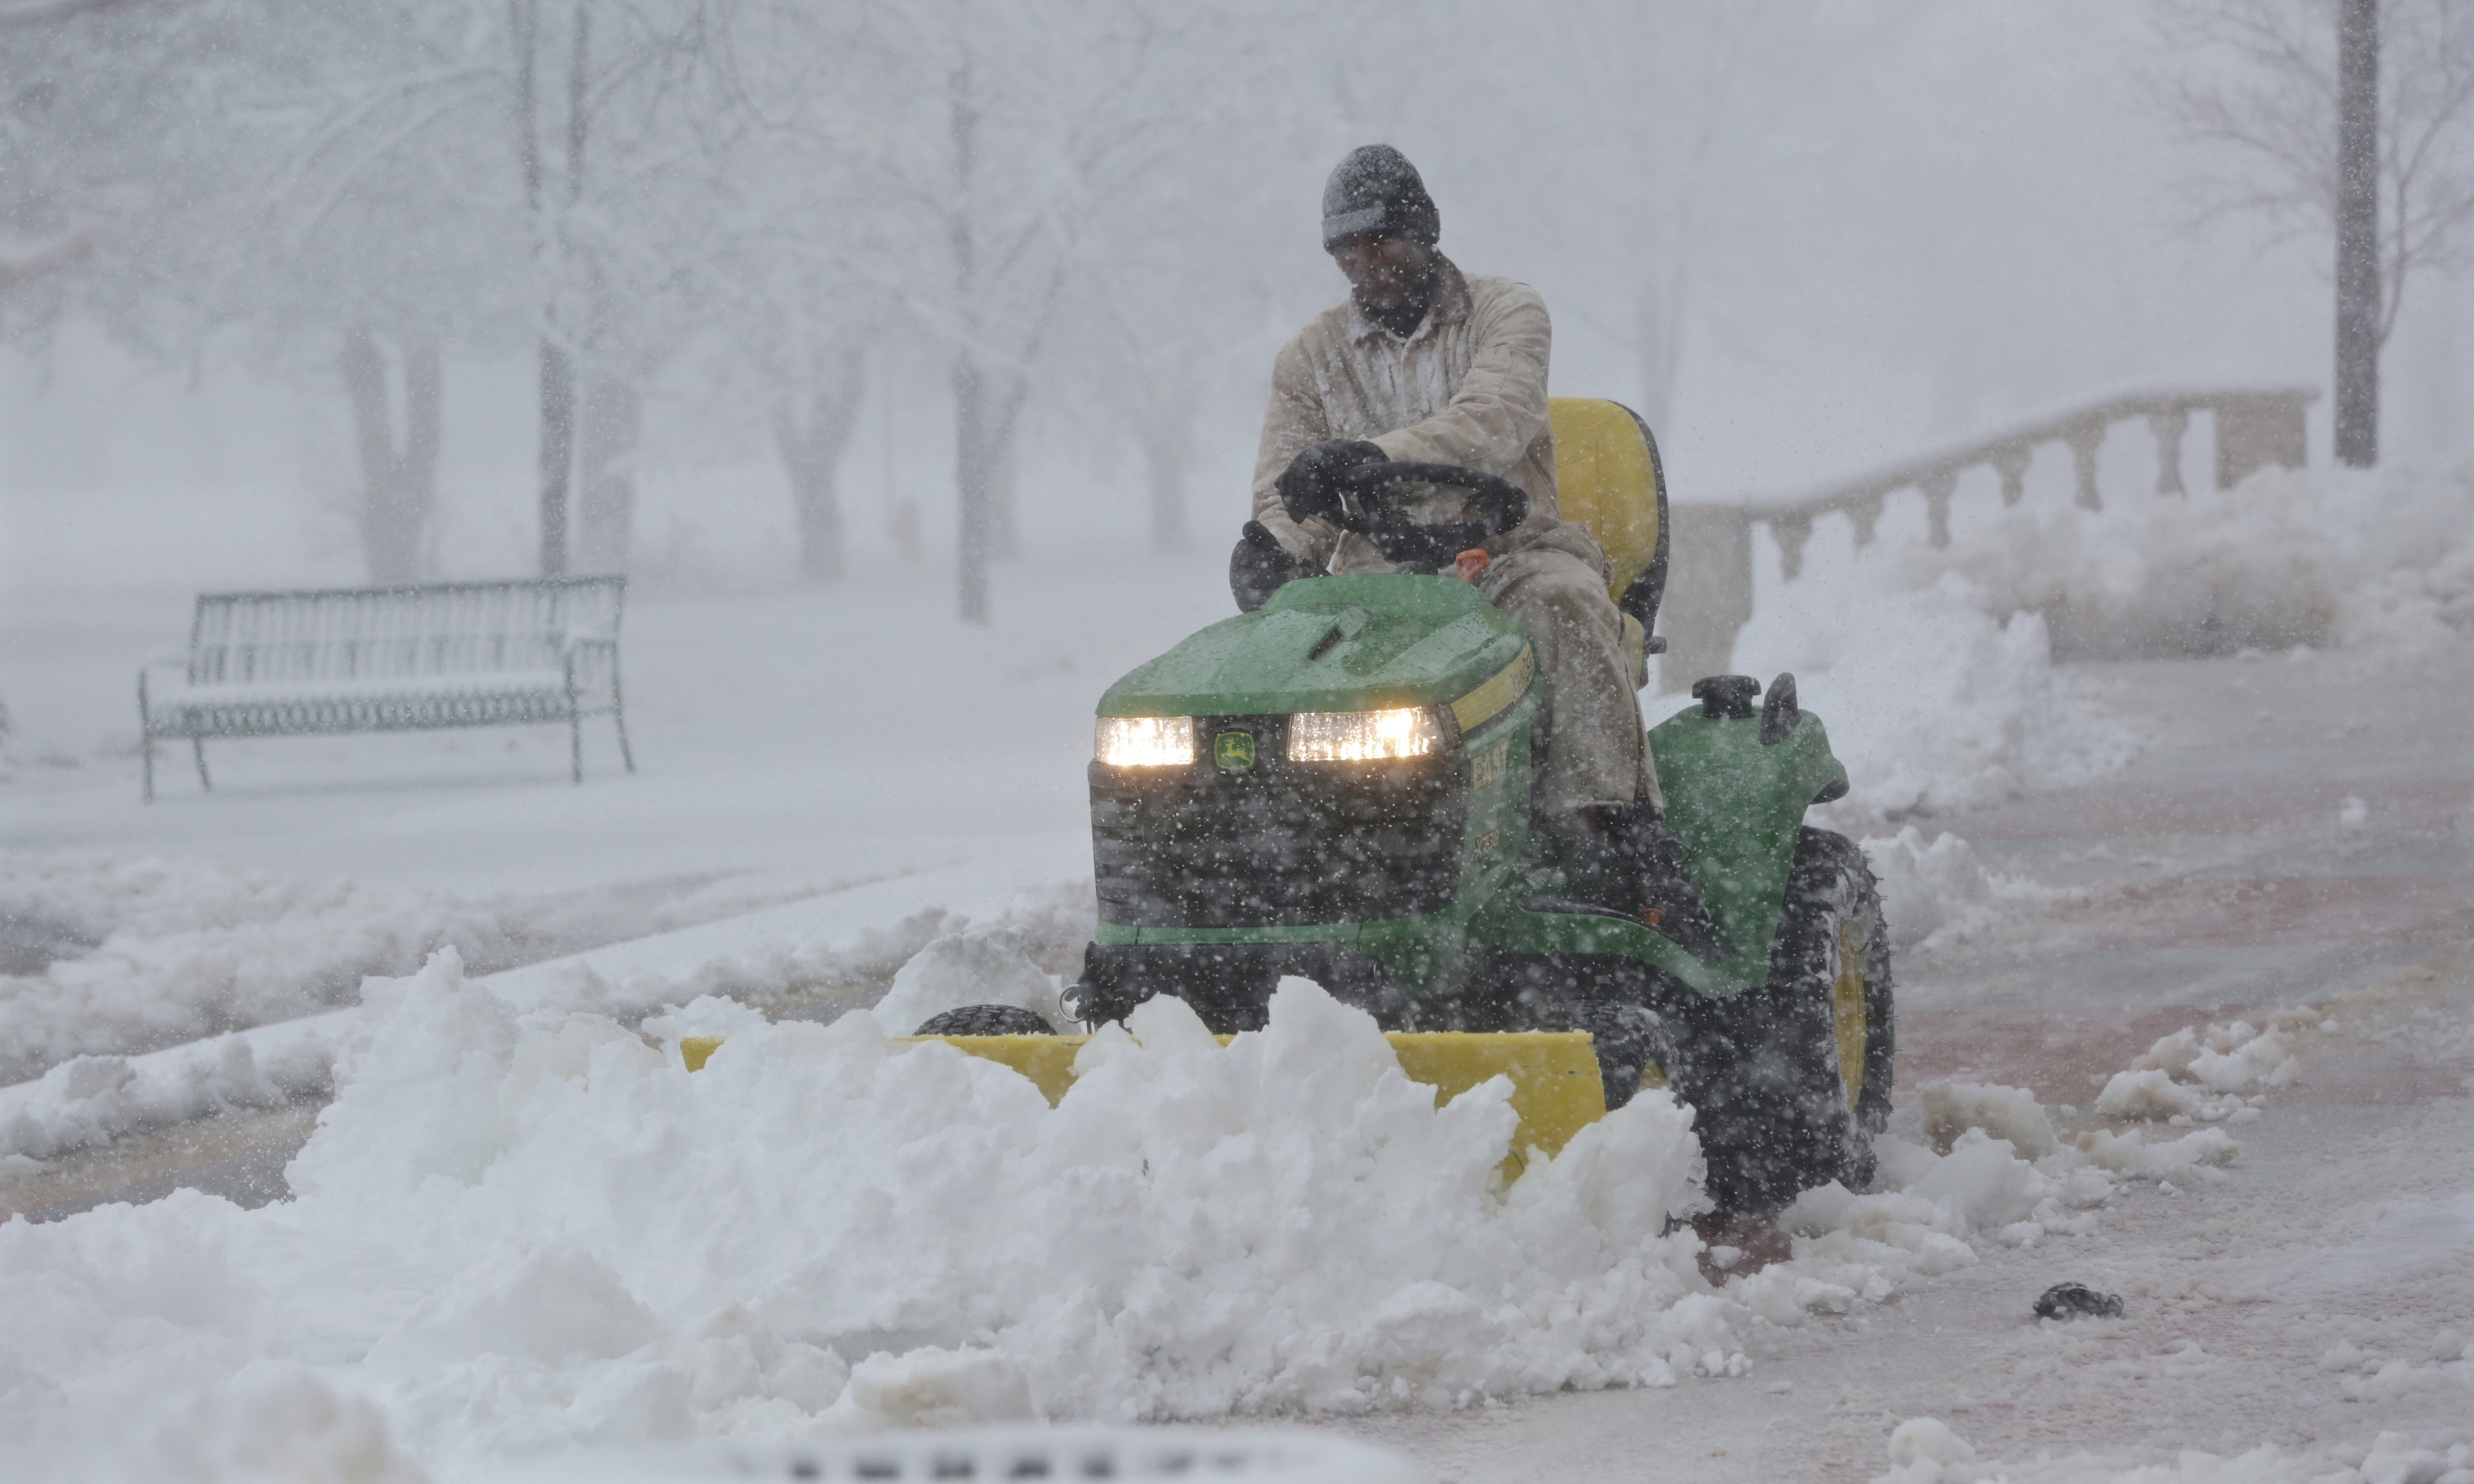 Photo: Winter Storm March 23 Plowing Snow At East High School Denver